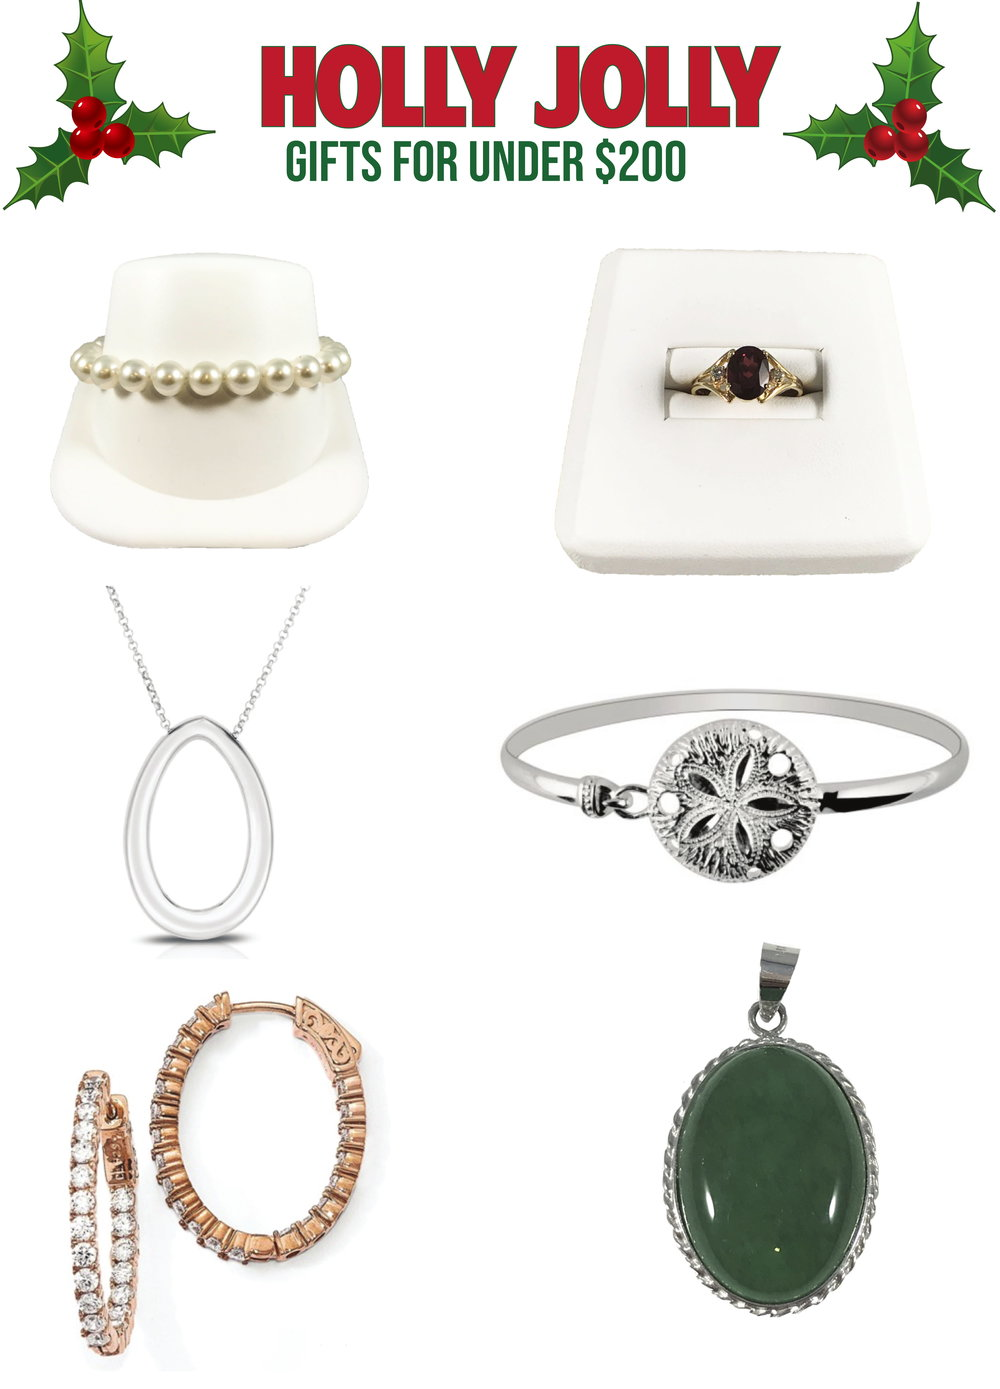 Listed: - 1. 8x8 1/2mm Fresh Water Pearl Bracelet2. Oval Garnet and Diamond Ring3. Large Oval Pendant with Cable Link Chain4. Shiny Textured Sand Dollar Top Bangle5. CZ In And Out Oval Hoop Earrings6. Jade Pendant